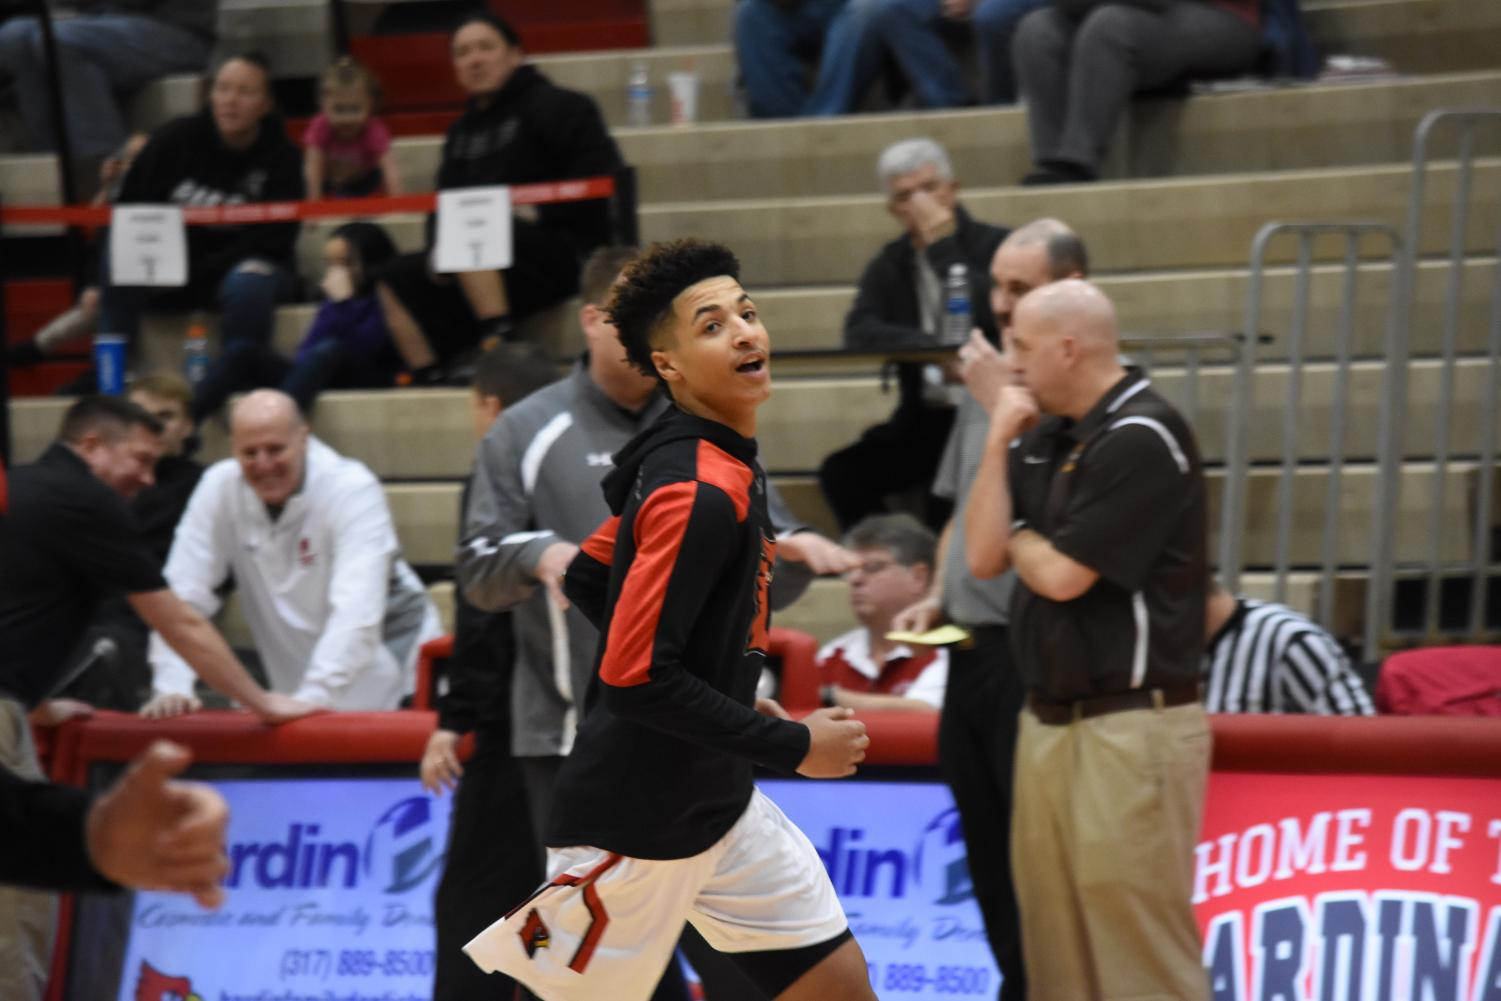 Sophomore Brevin Jefferson warms up before the basketball games against Evansville Central on Feb. 10.